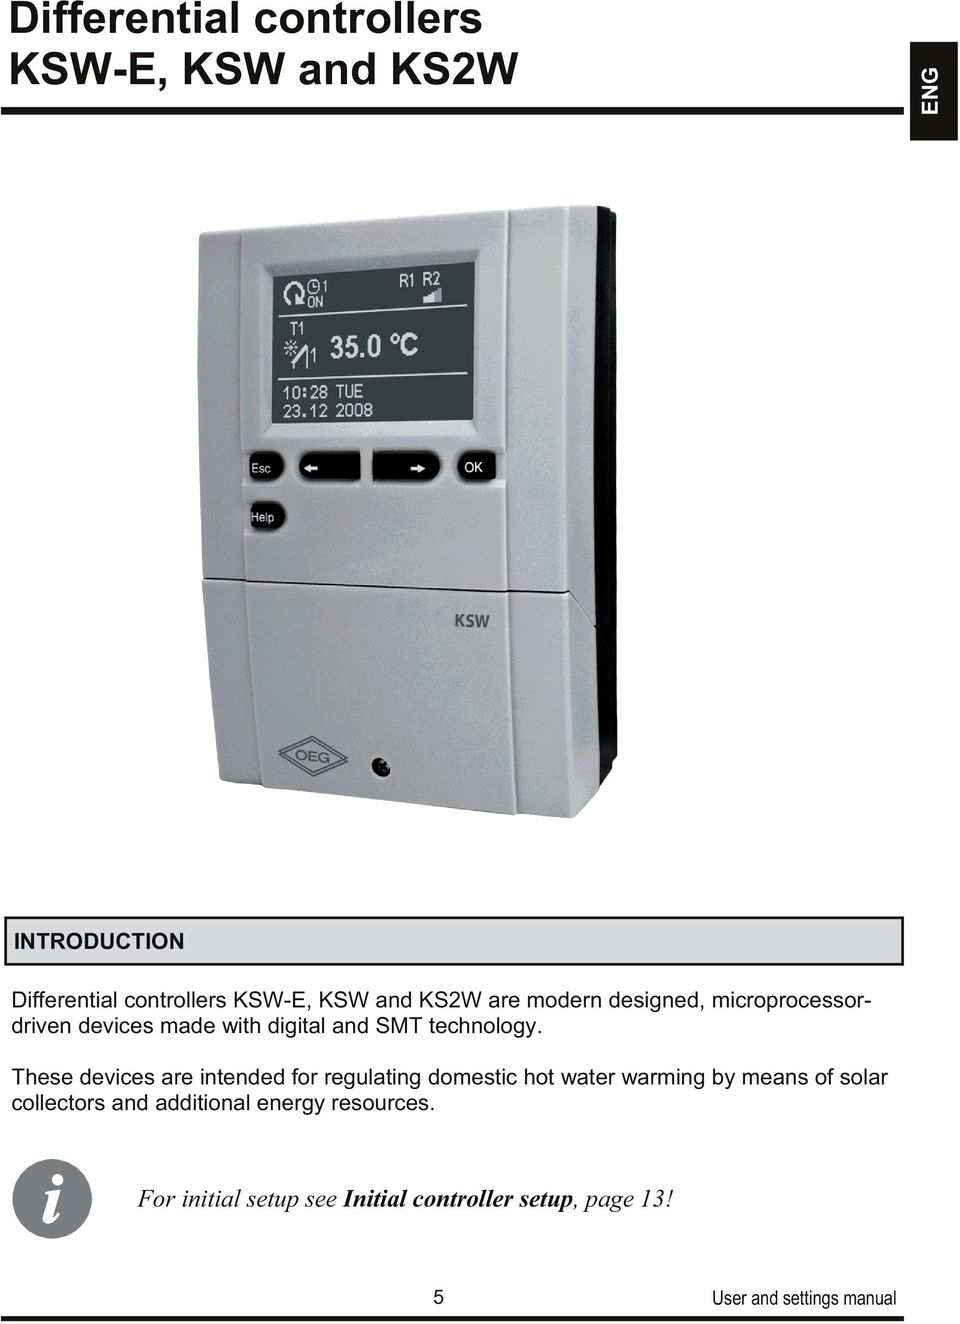 These devices are intended for regulating domestic hot water warming by means of solar collectors and